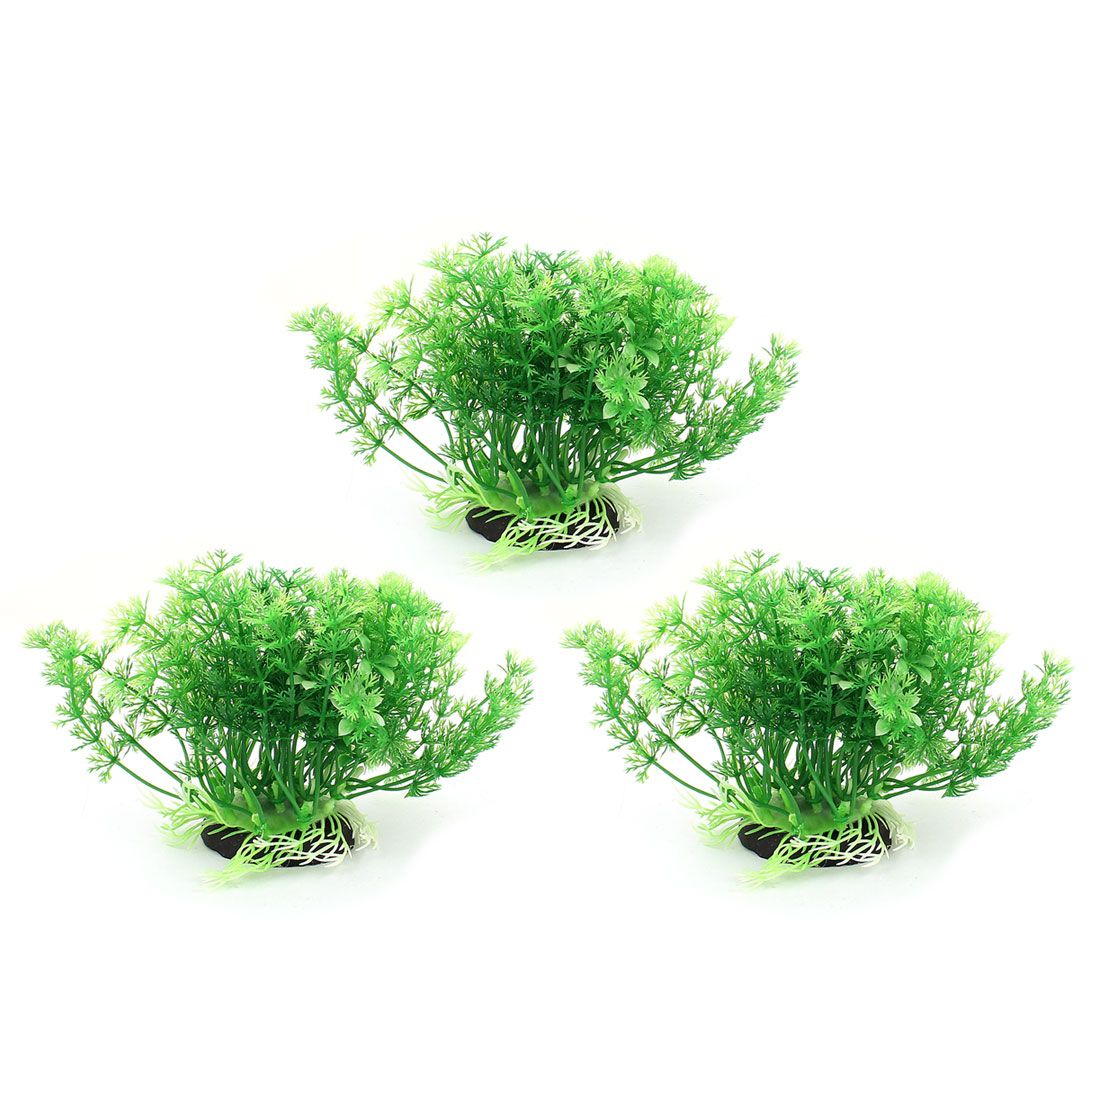 Plastic Leaf Aquatic Plant Fish Tank Aquarium Decor Green 3 Pcs